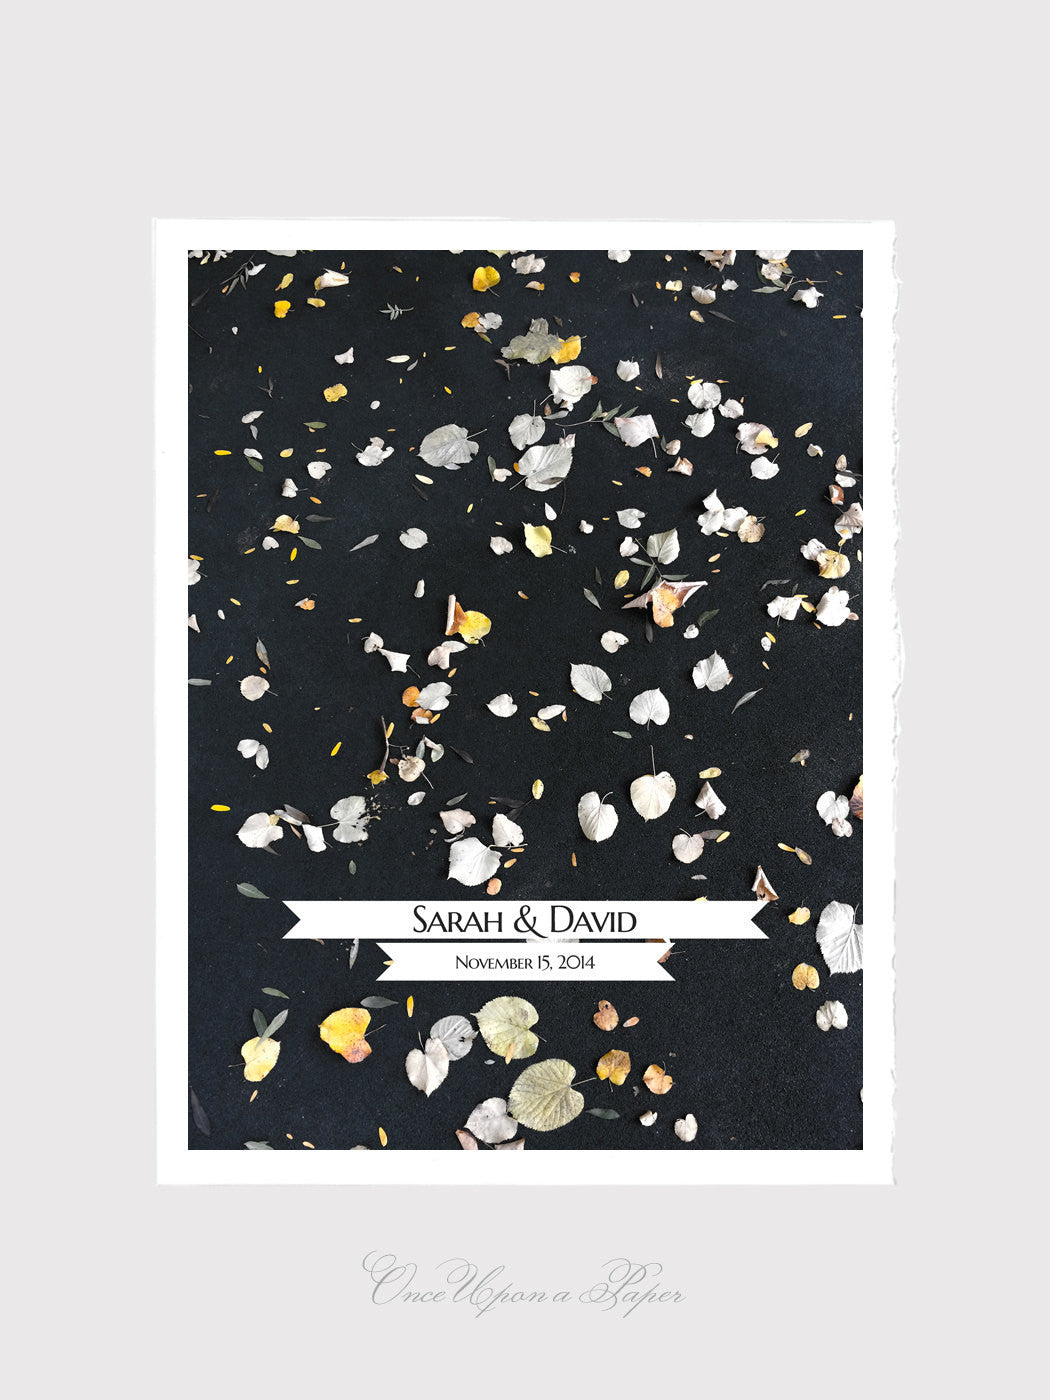 Wedding Guest Book Alternative Print - GOLDEN FALL WEDDING - 30 - 125 signature spots Guest Signatures - Modern Guestbook Poster - sign on